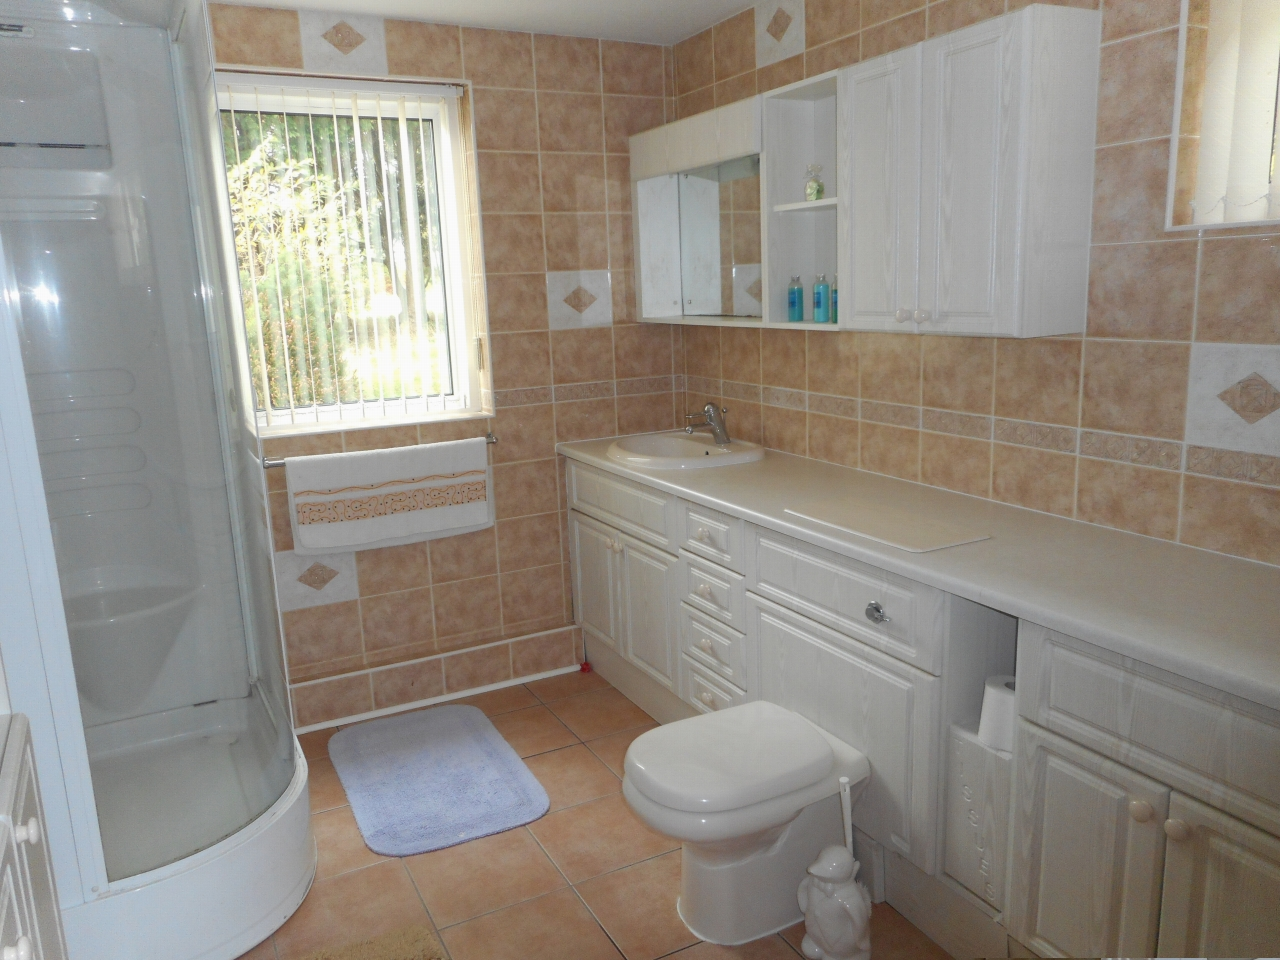 5 bedroom detached house SSTC in Colby - Photograph 35